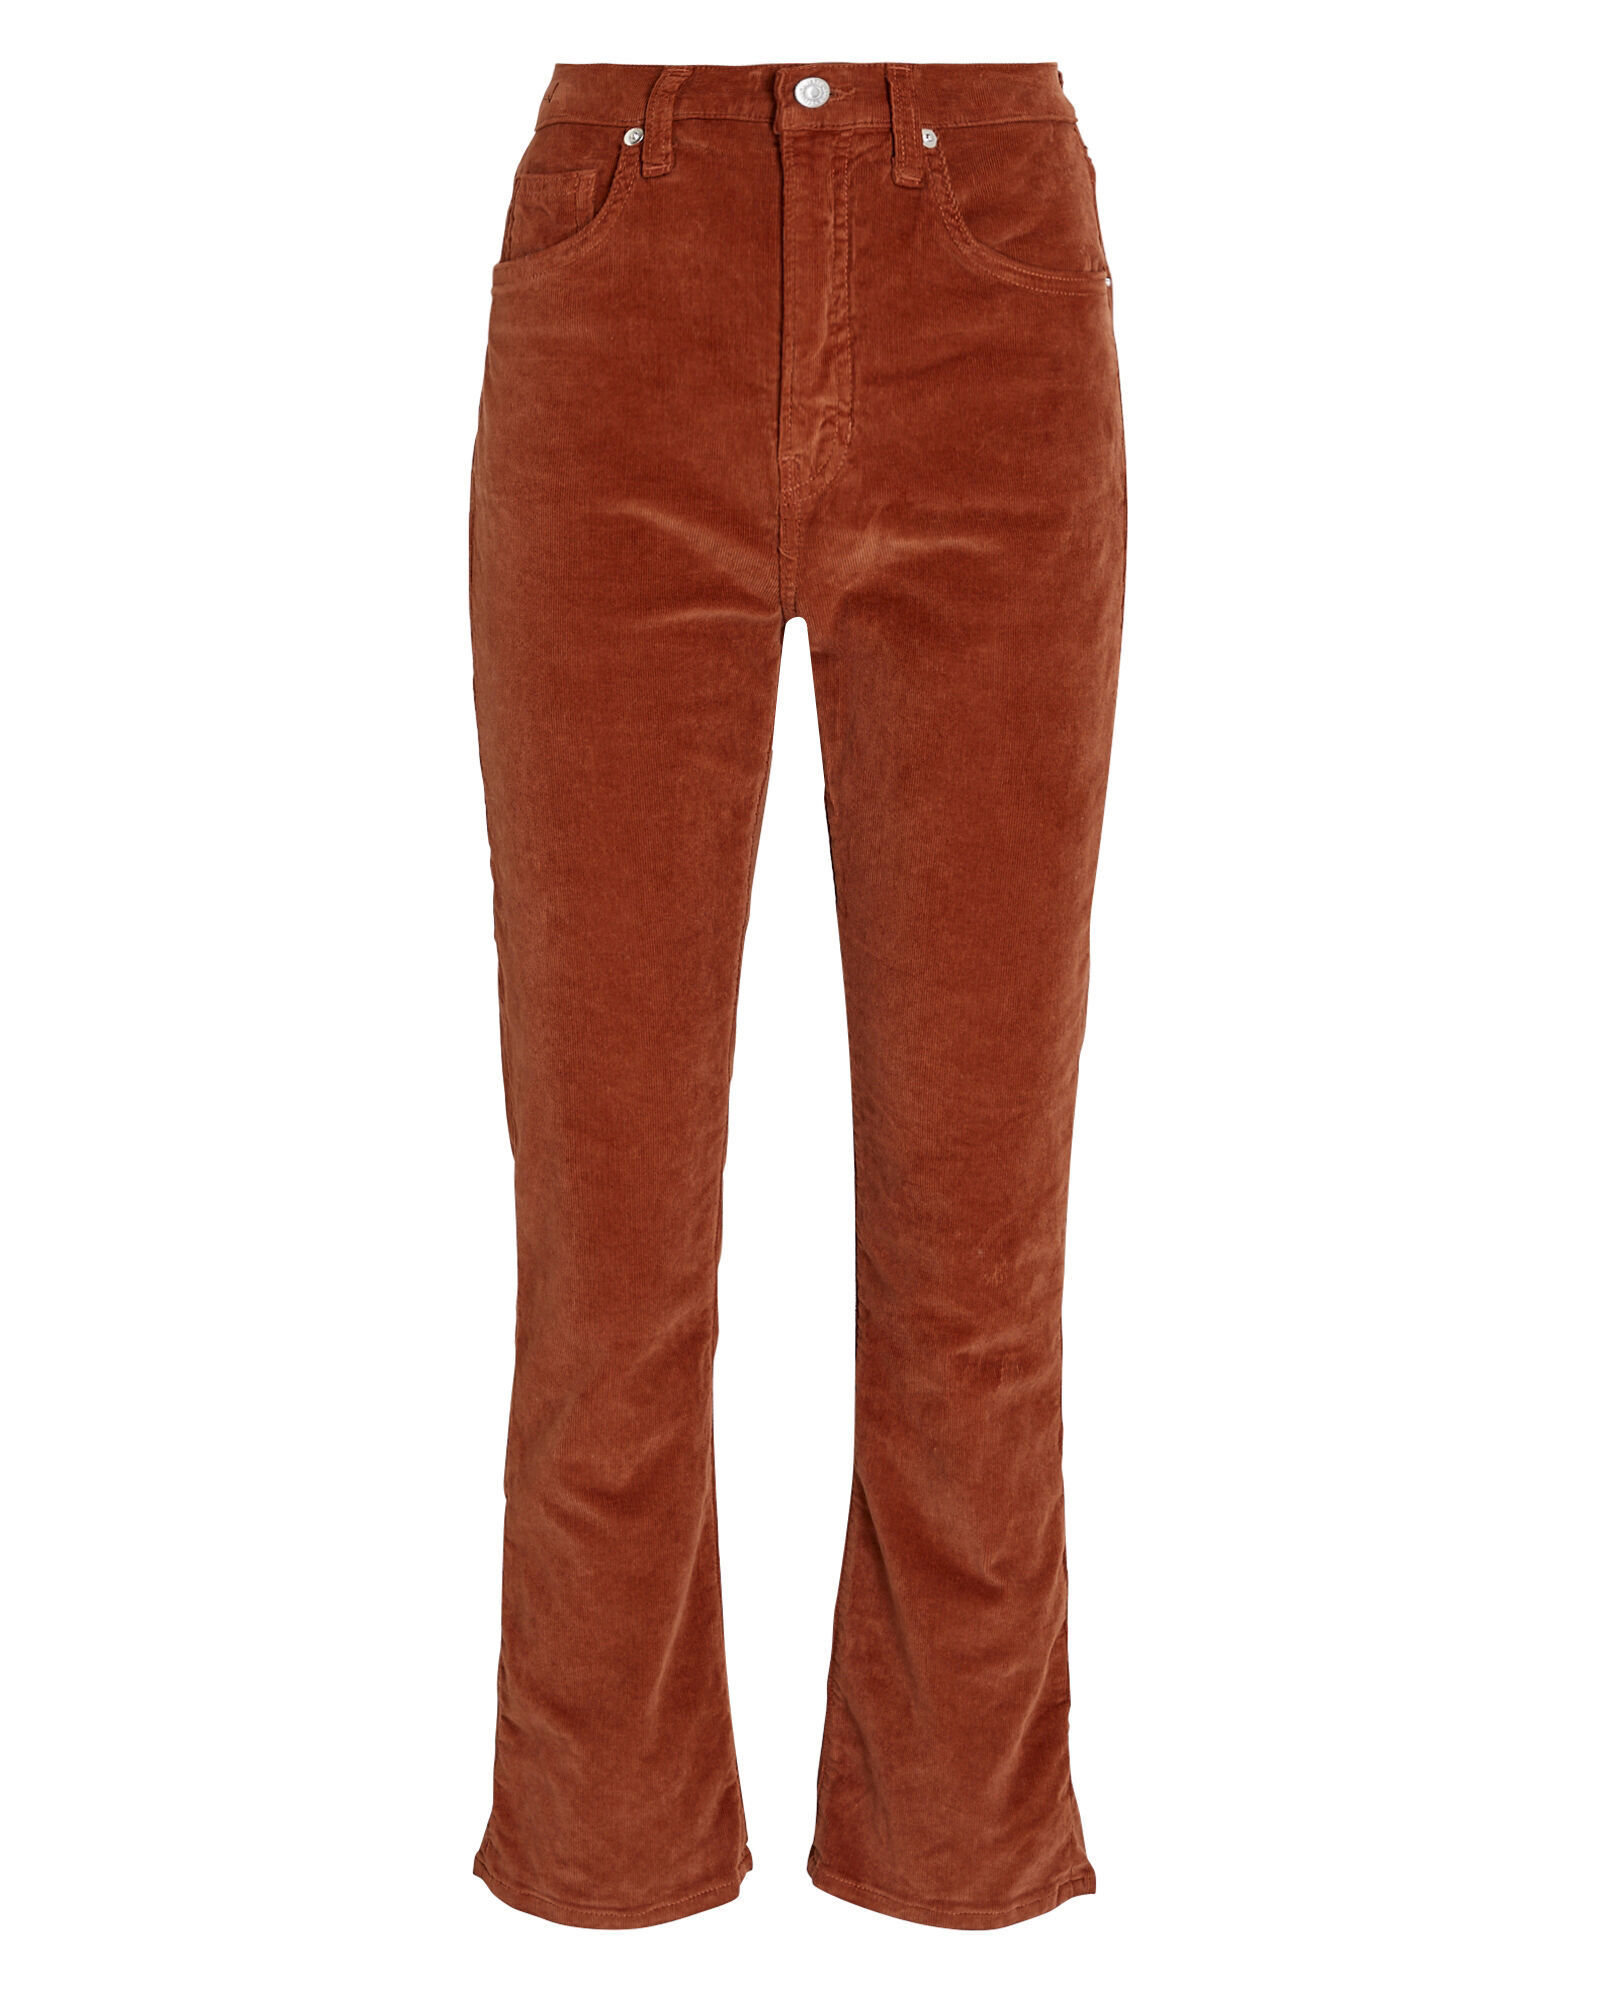 Carly Corduroy Kick Flare Pants, ORANGE, hi-res